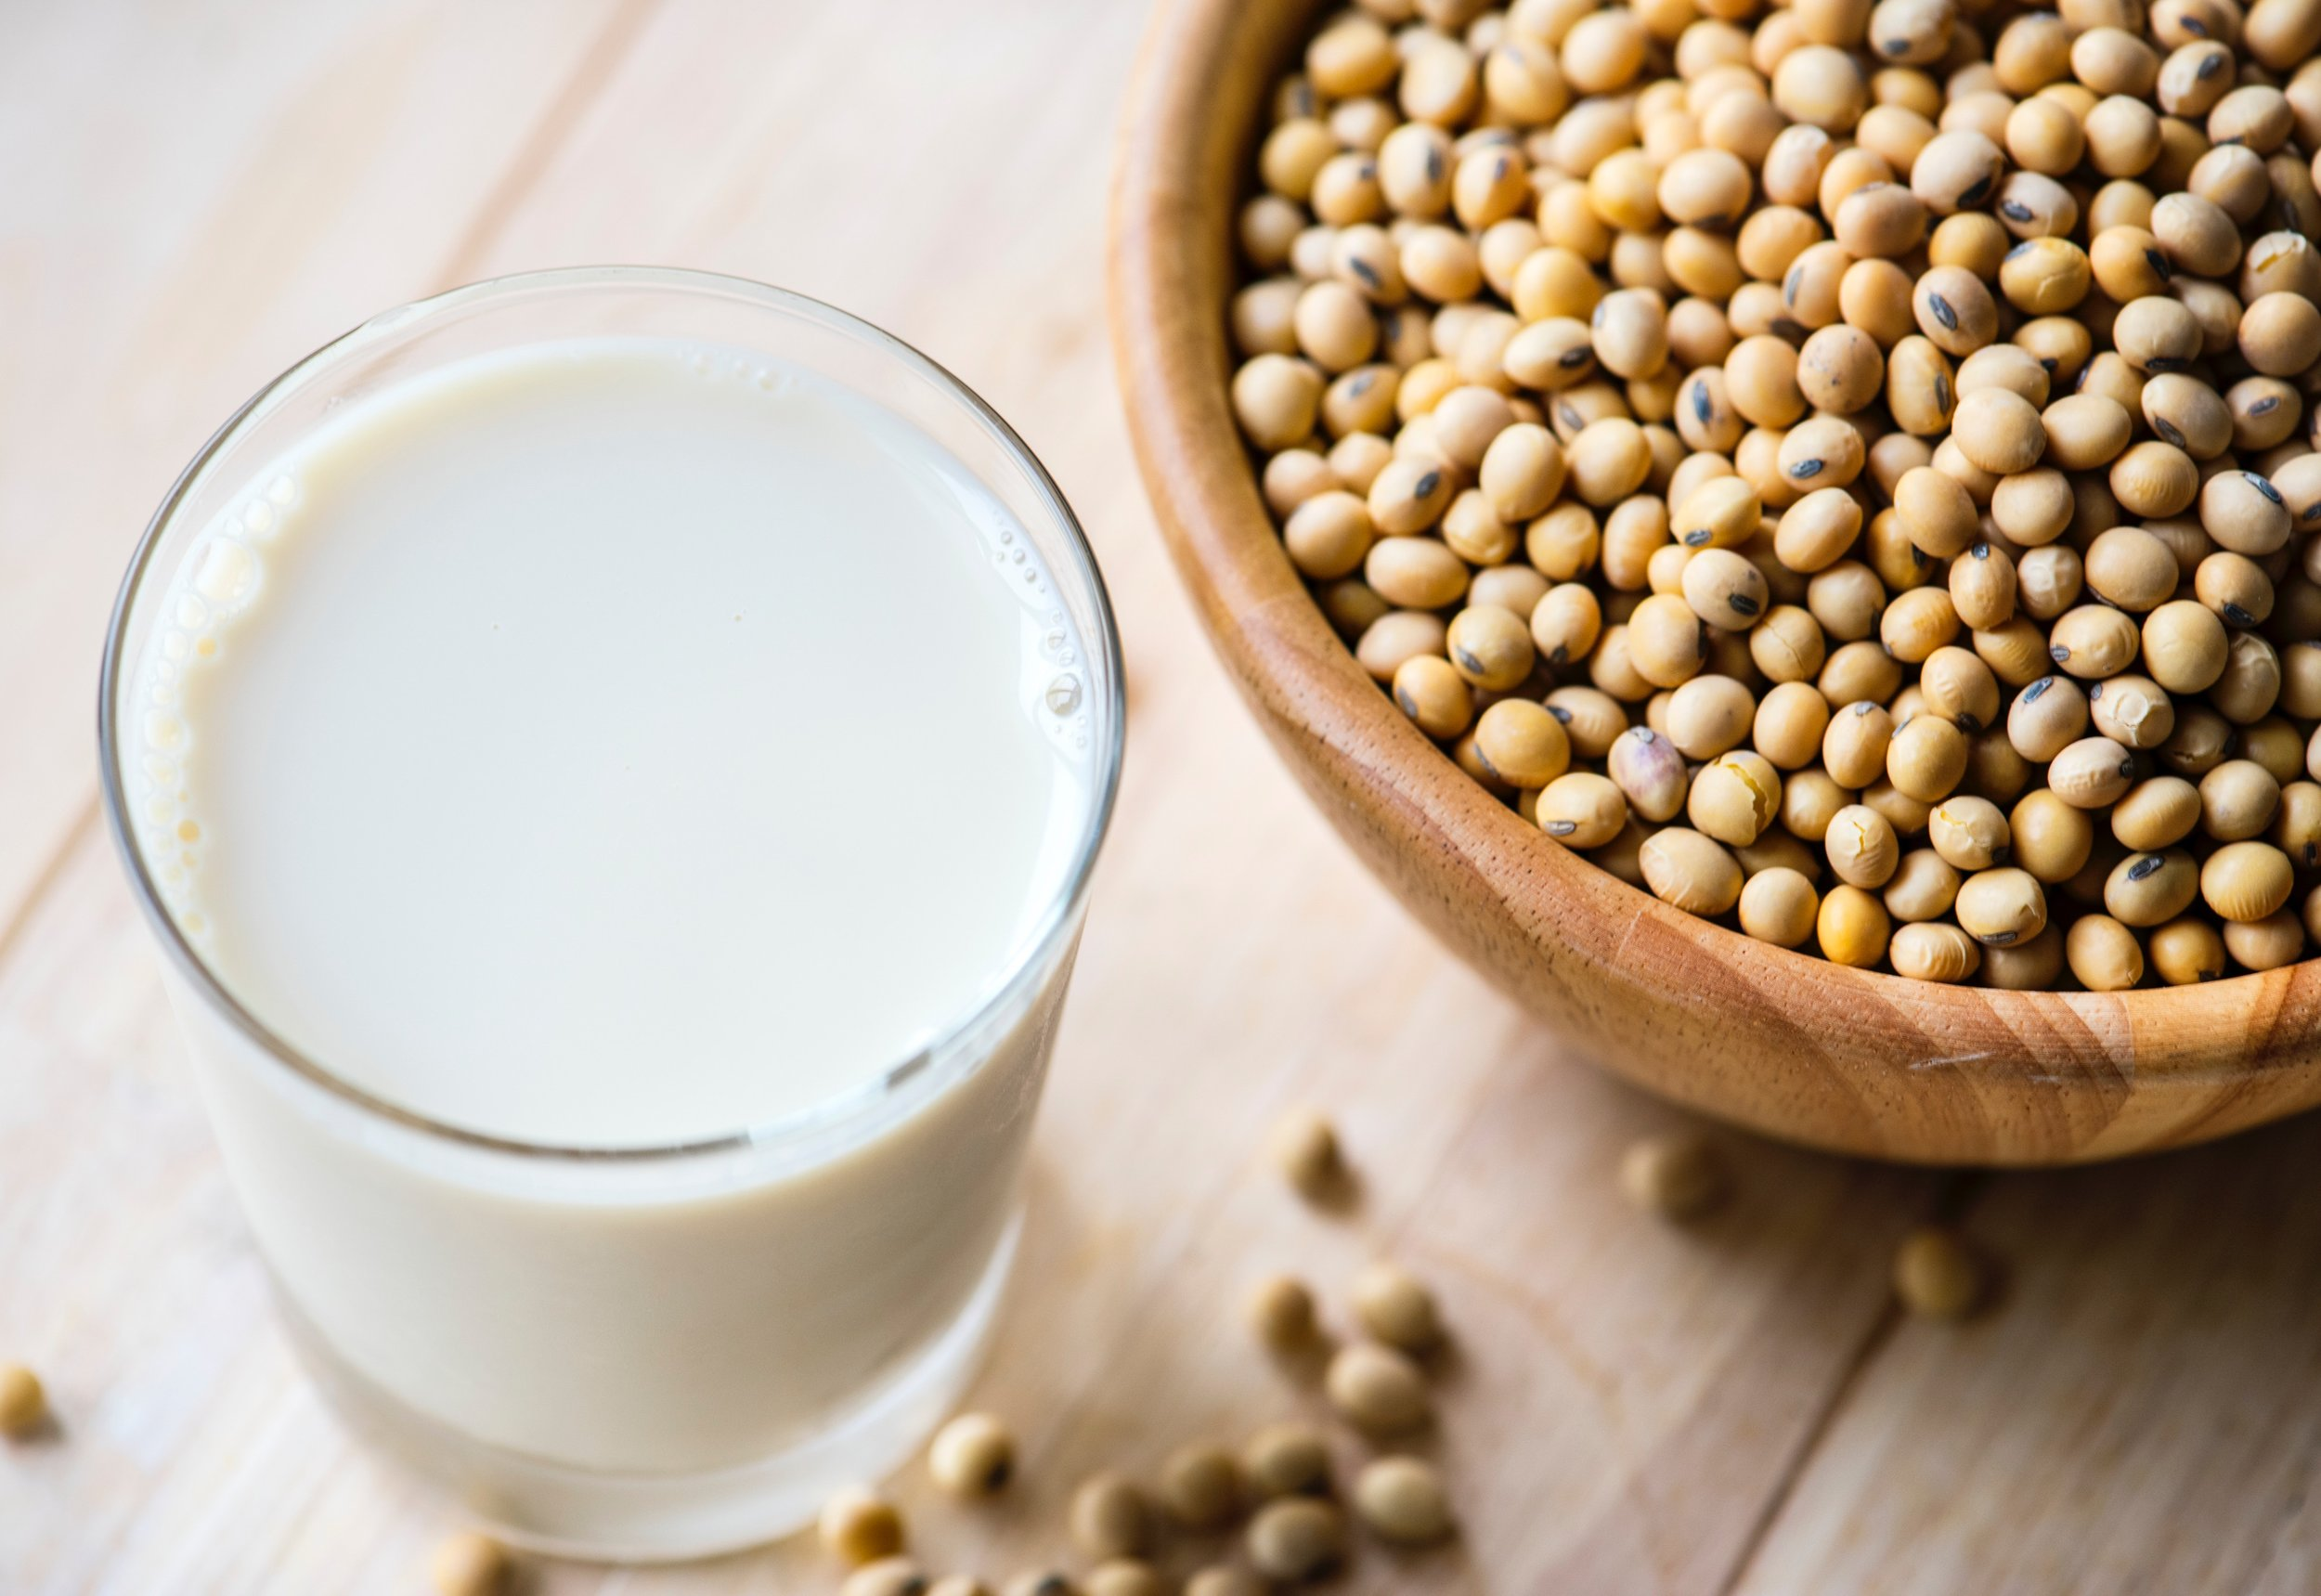 Soy milk is a great non-Dairy option